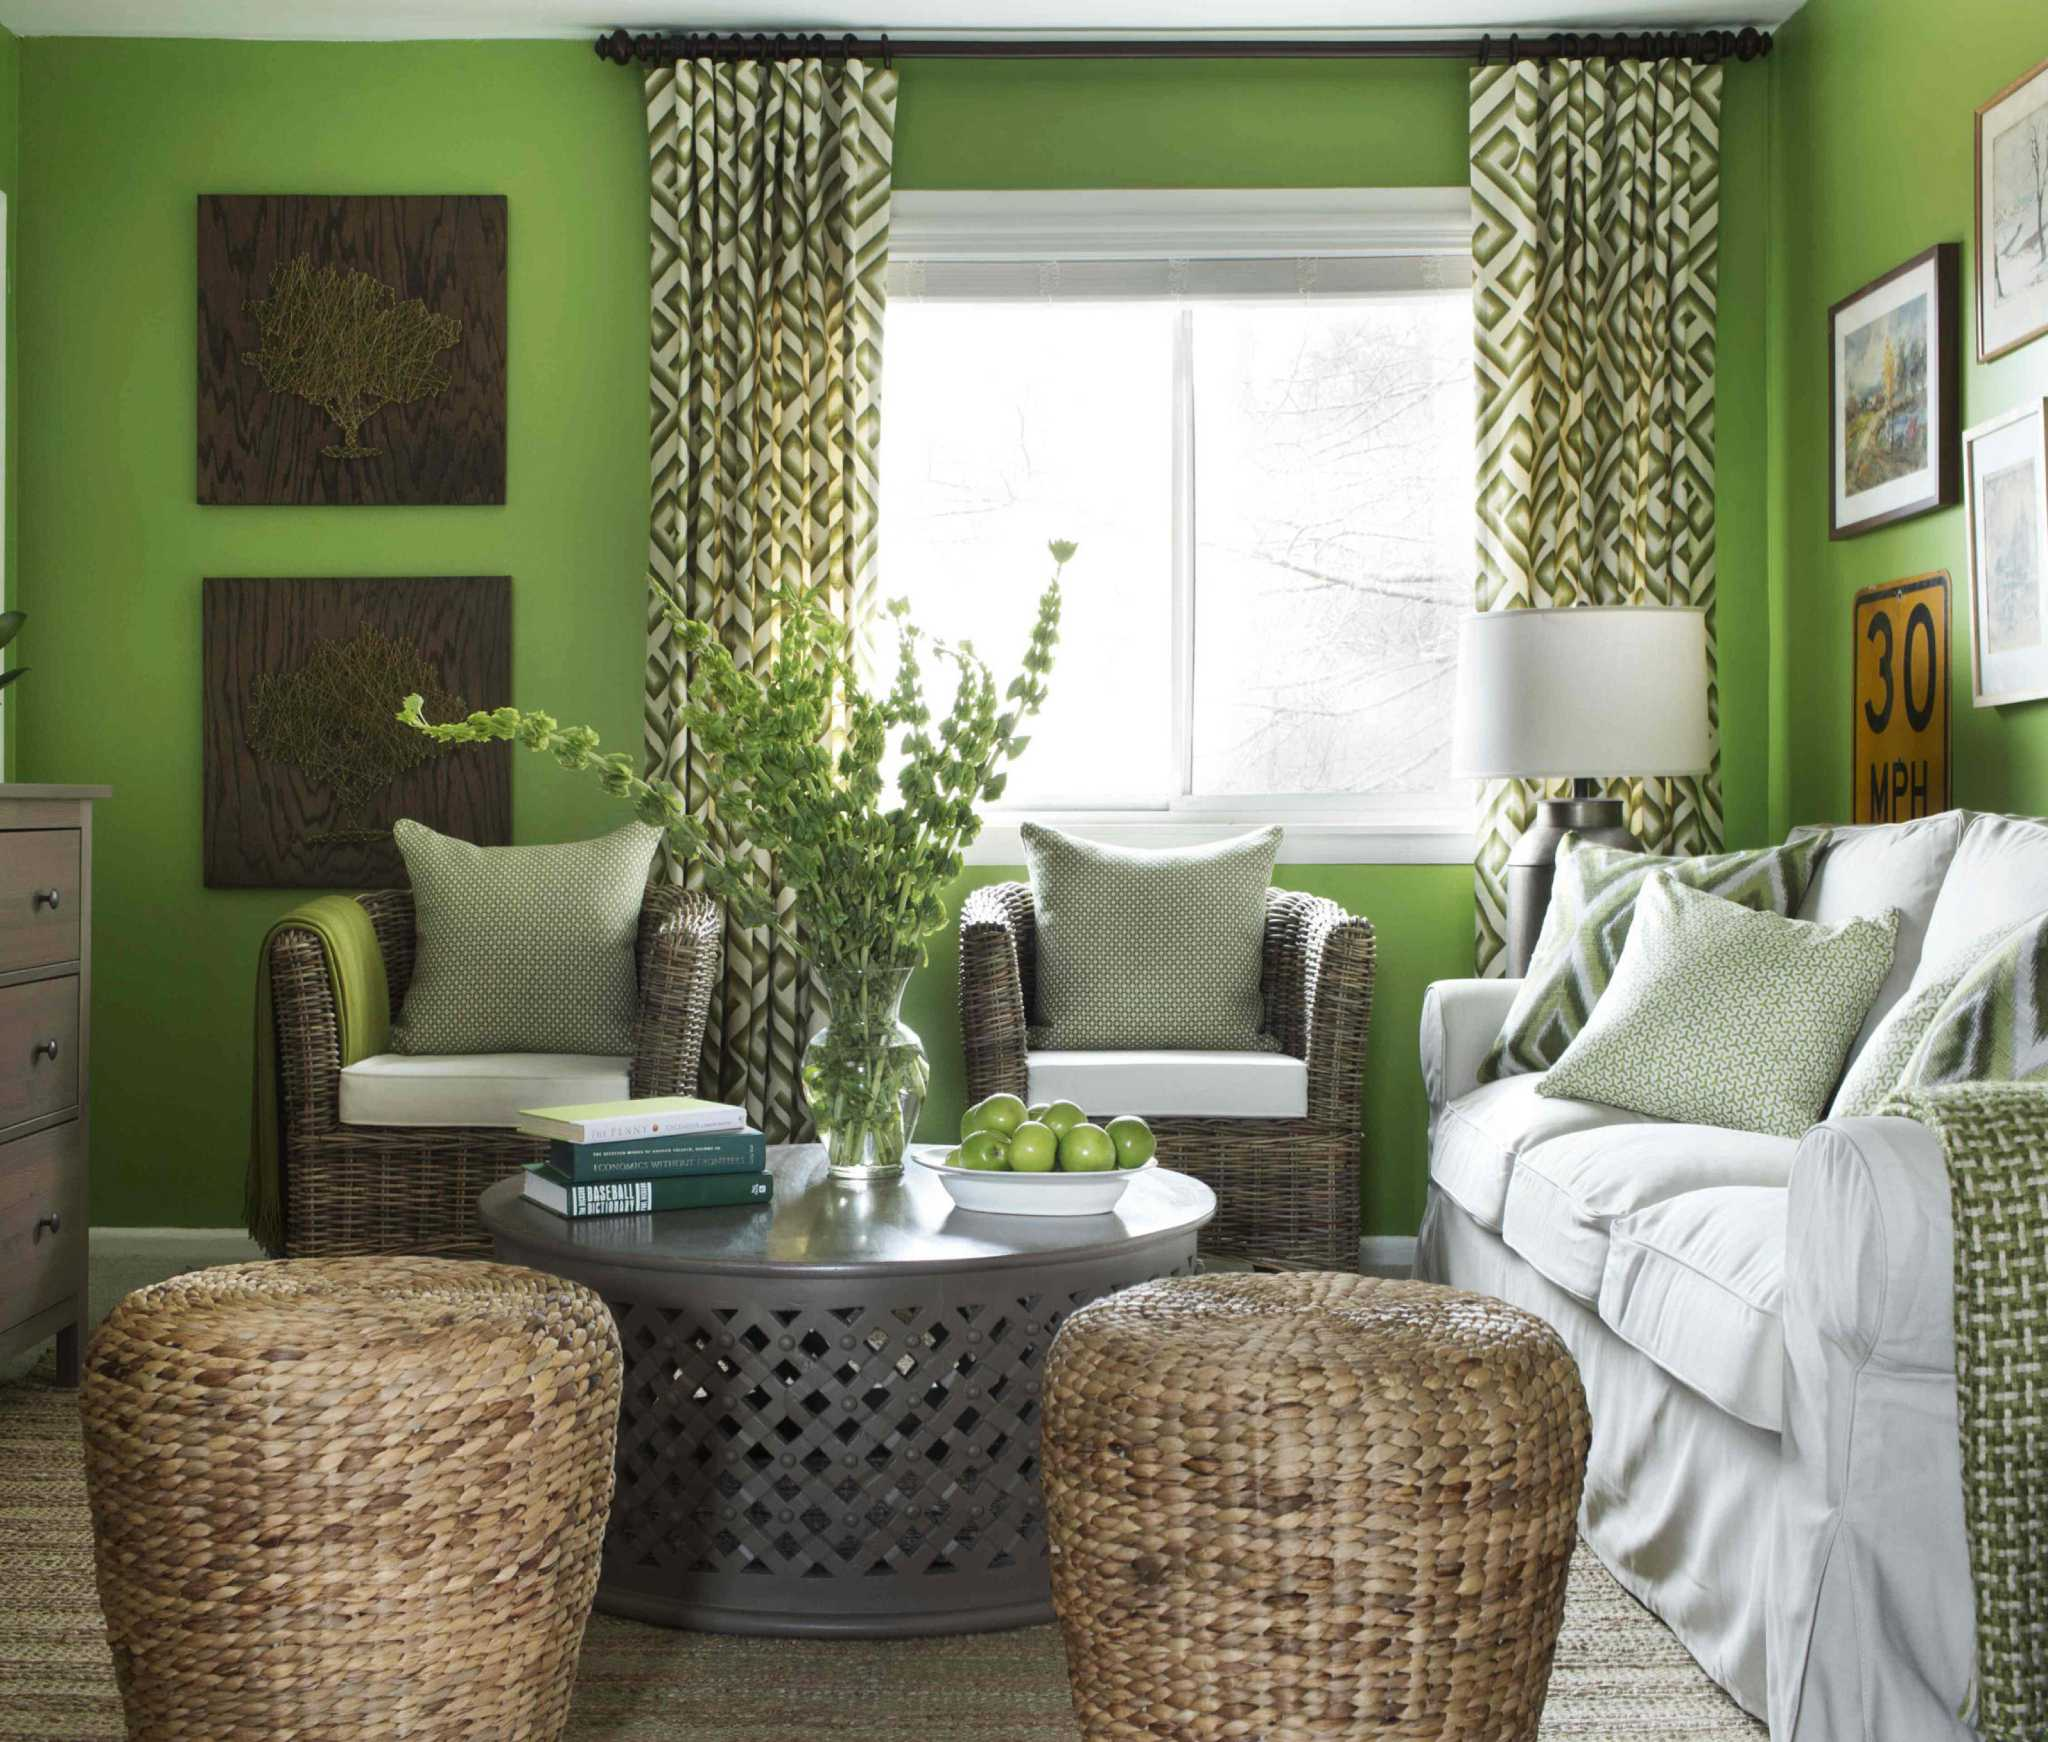 bright wall colors fabulous with balance and moderation san antonio express news. Black Bedroom Furniture Sets. Home Design Ideas